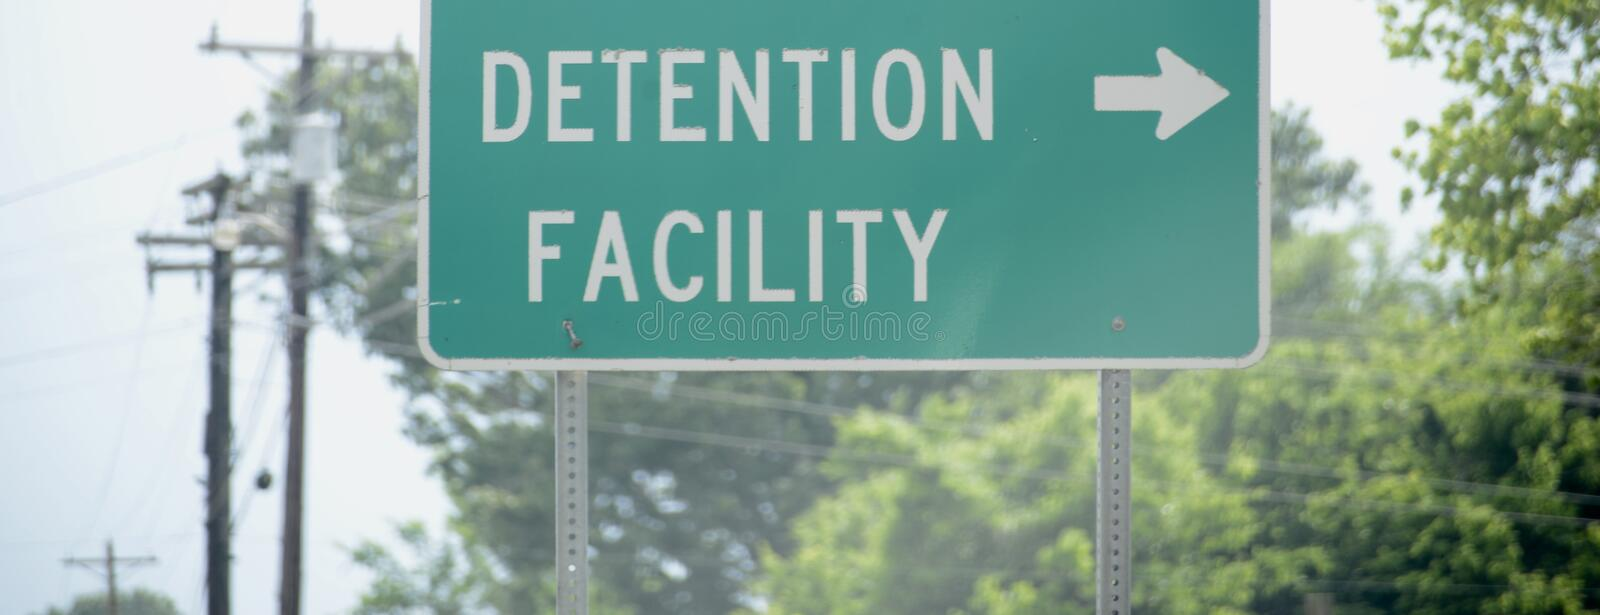 Jail and Detention Center royalty free stock photography